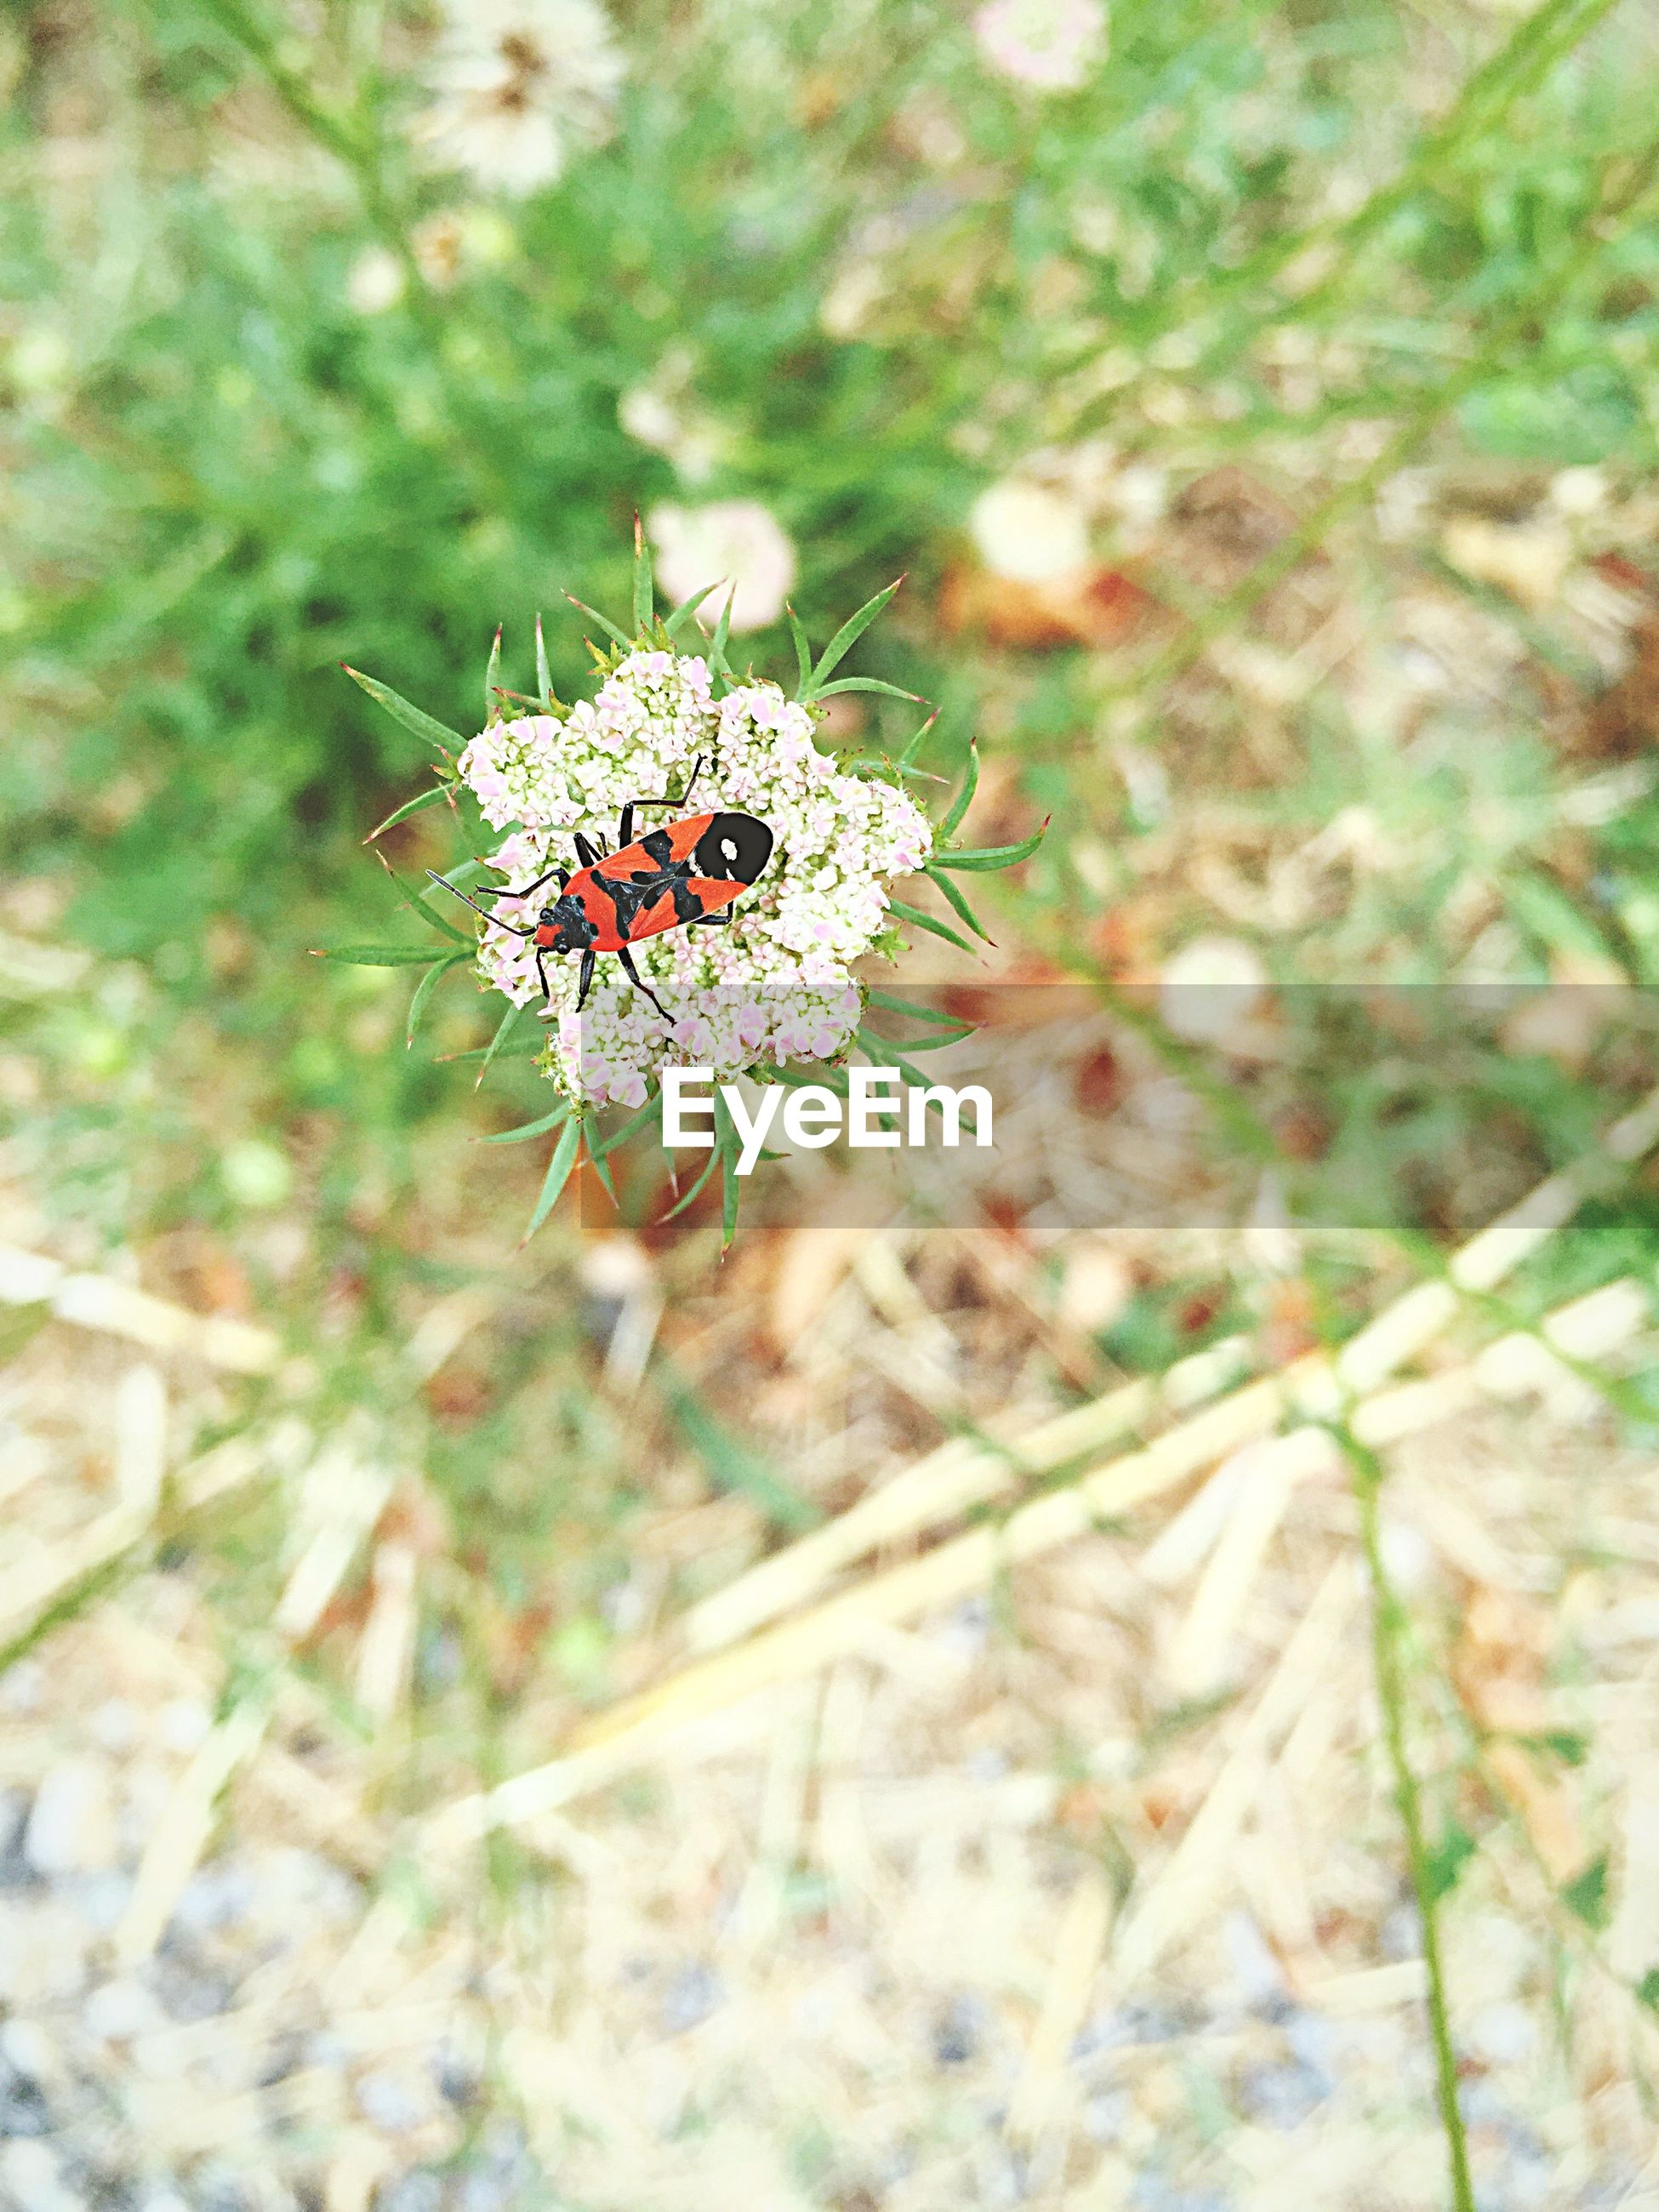 High angle view of bug on flower outdoors